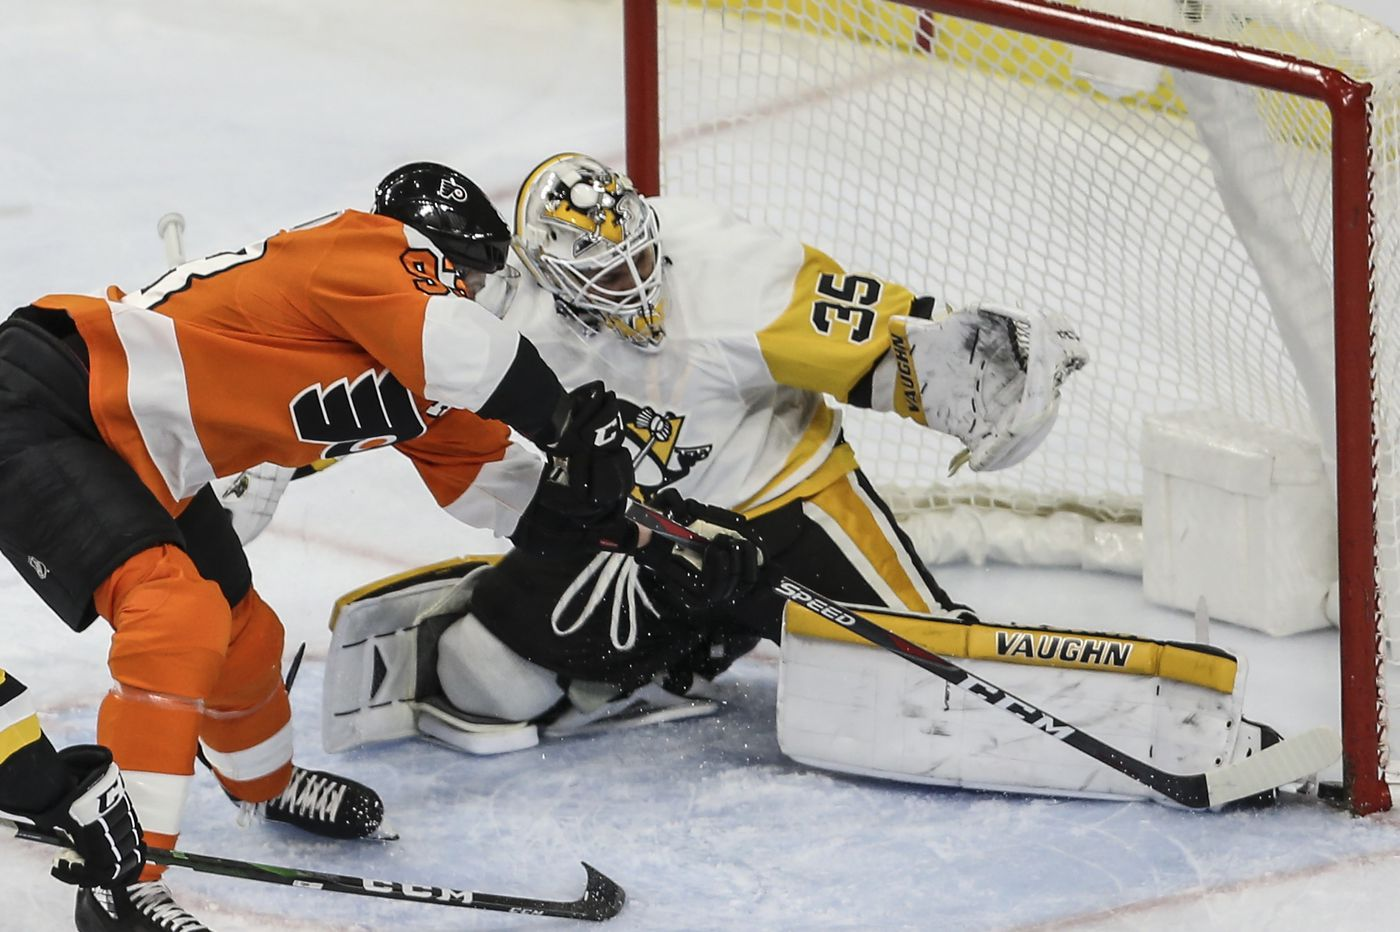 Old rivals Flyers, Pittsburgh Penguins open a 56-game sprint to the finish line